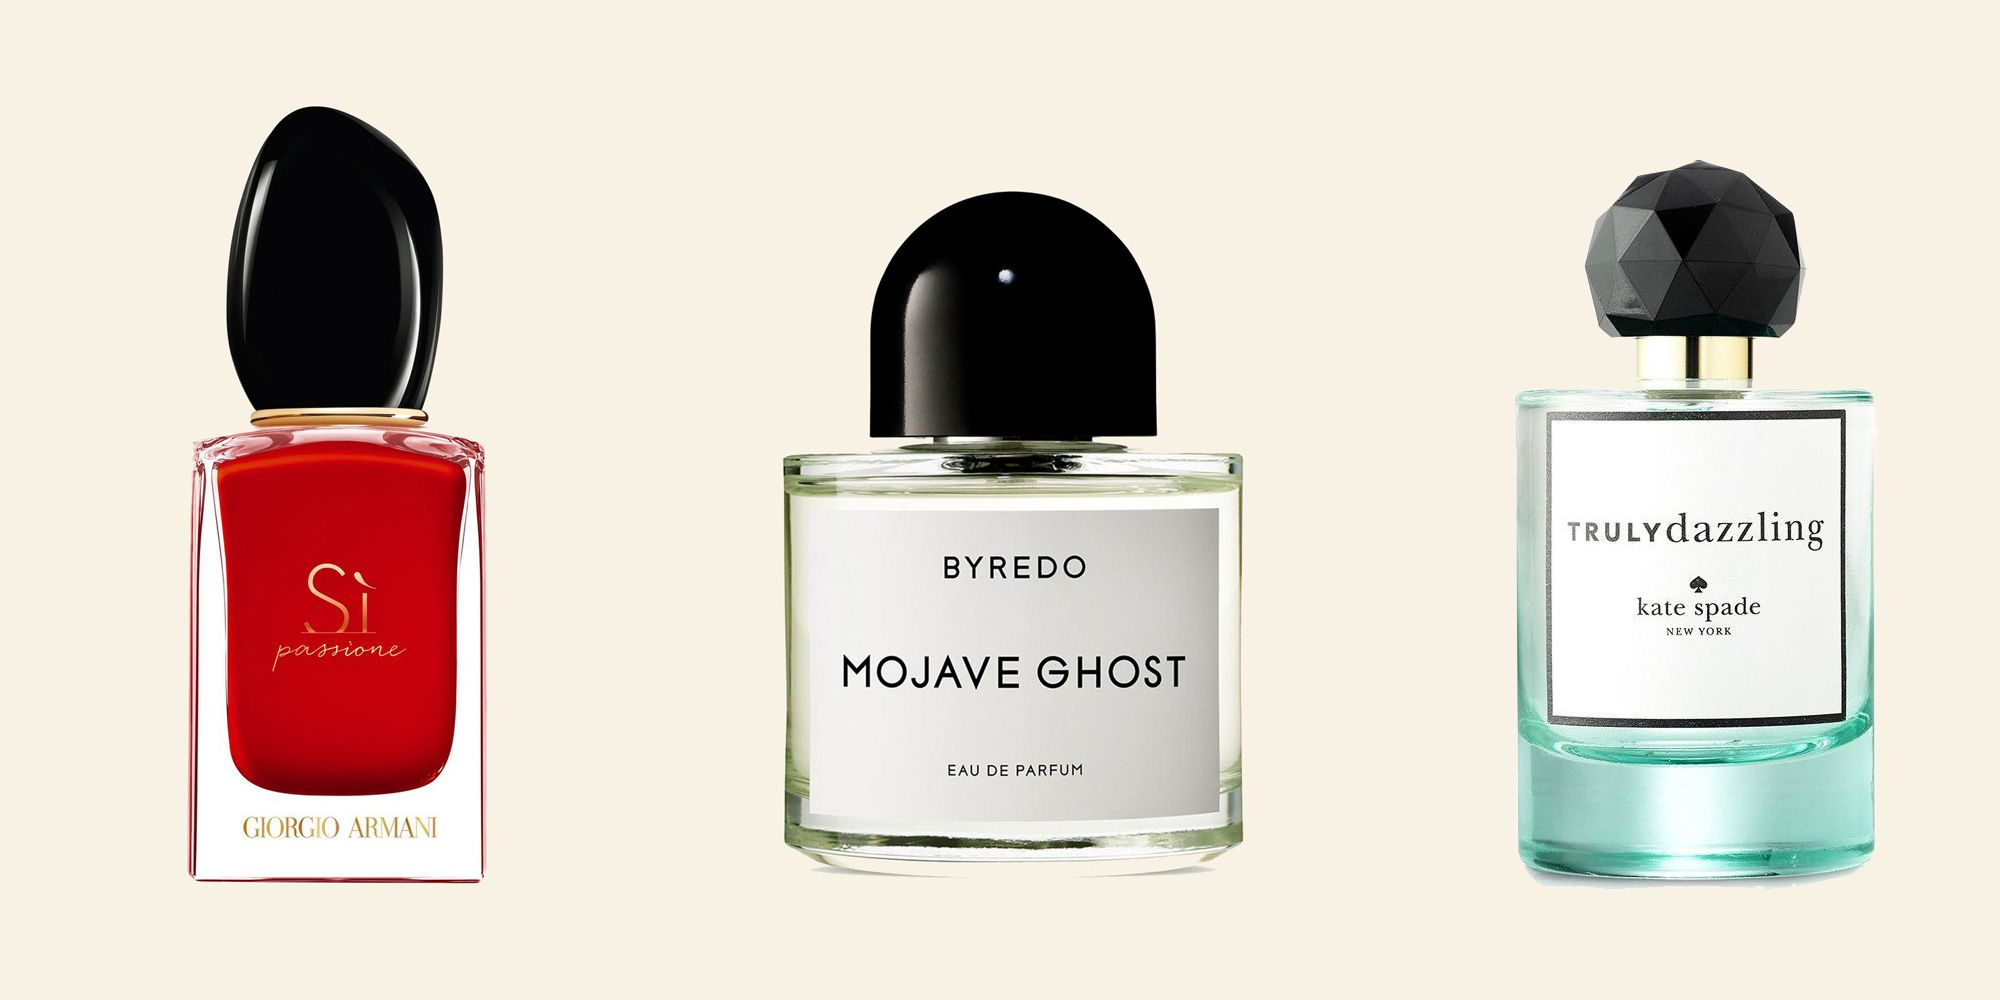 The 12 Best Winter Fragrances Scents That Will Make You Feel Cozy